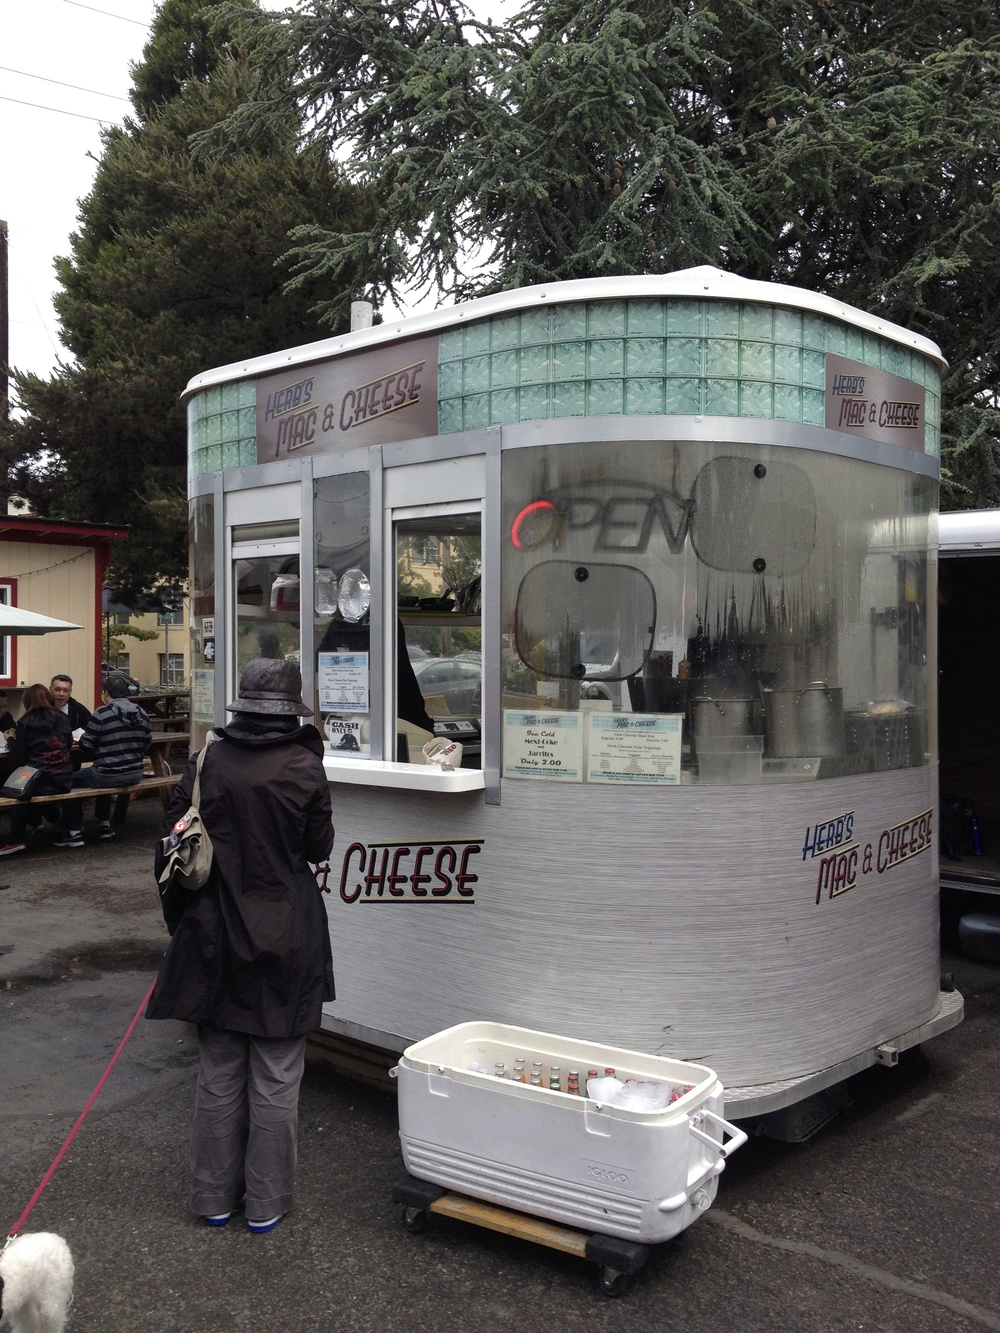 One of the hundreds of fun food carts scattered throughout Portland, Oregon.